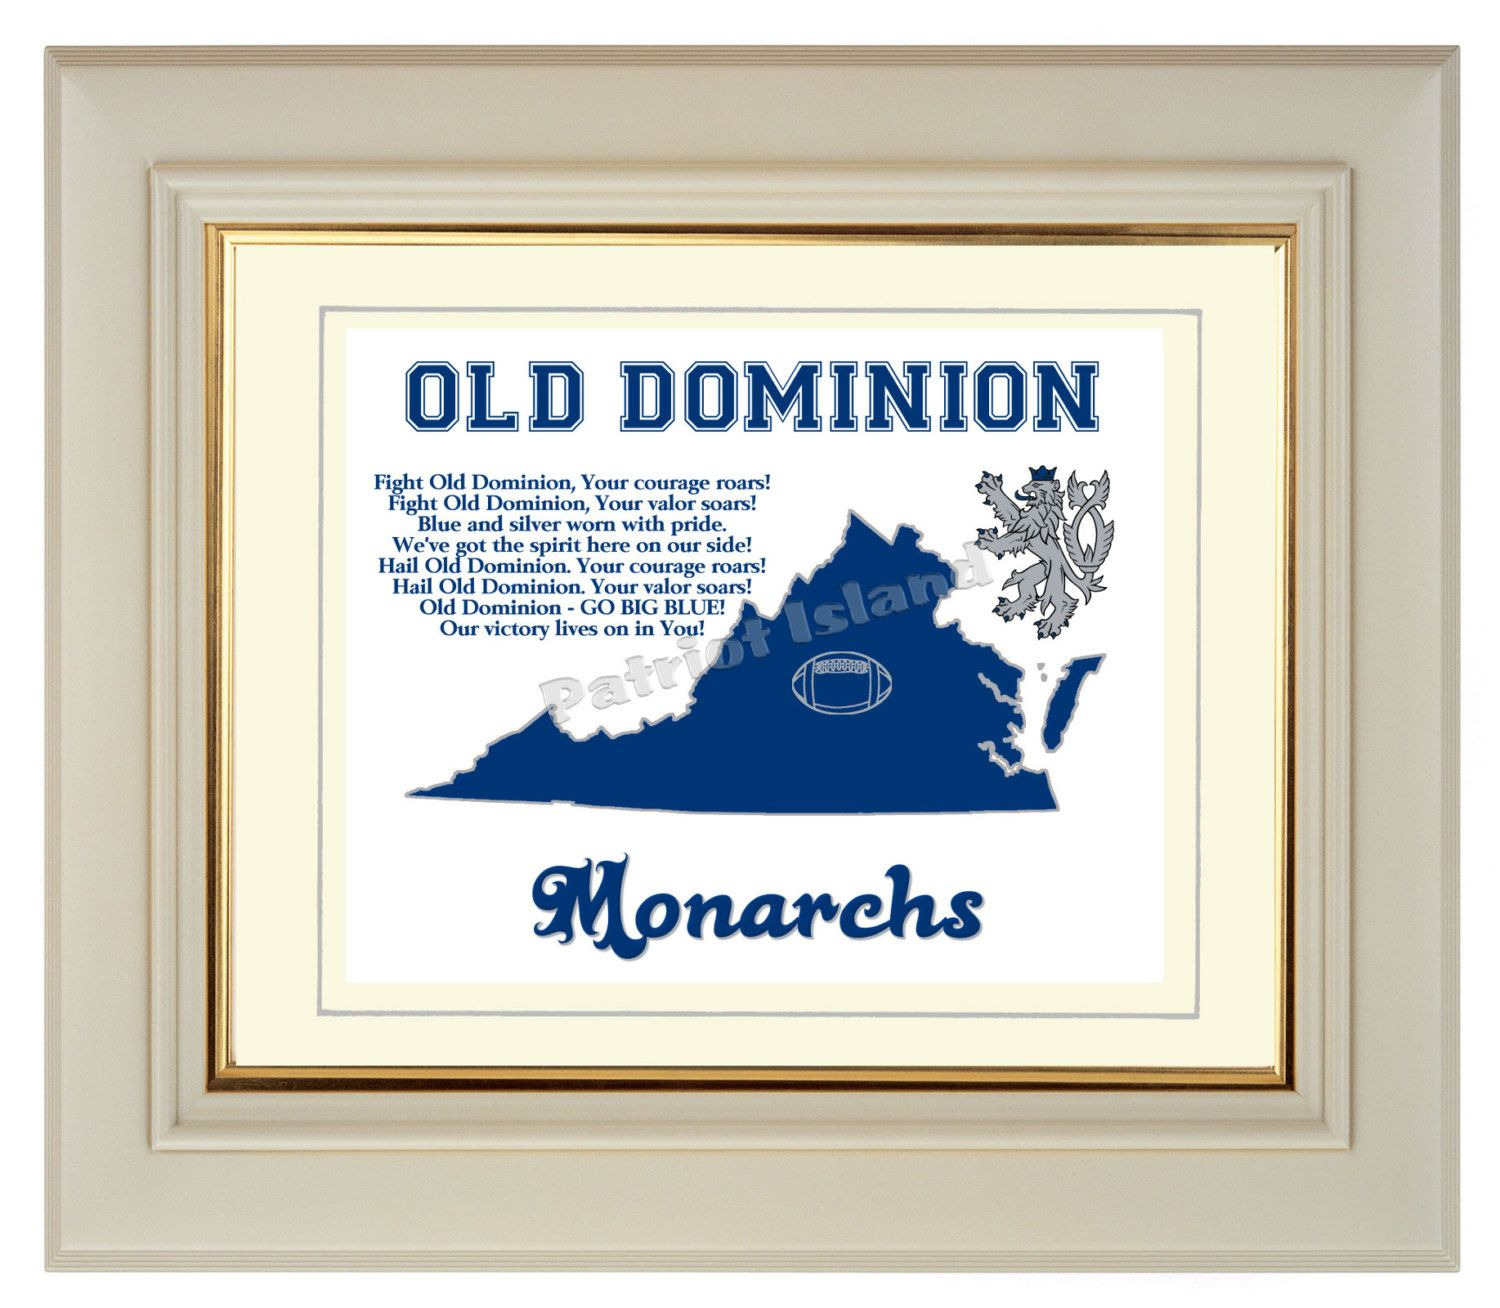 Old Dominion Monarchs Art Print Virginia State Map College Football Fight Song Gift Home Decor 8x10 14 00 Via Etsy Old Dominion Art Prints Blue And Silver